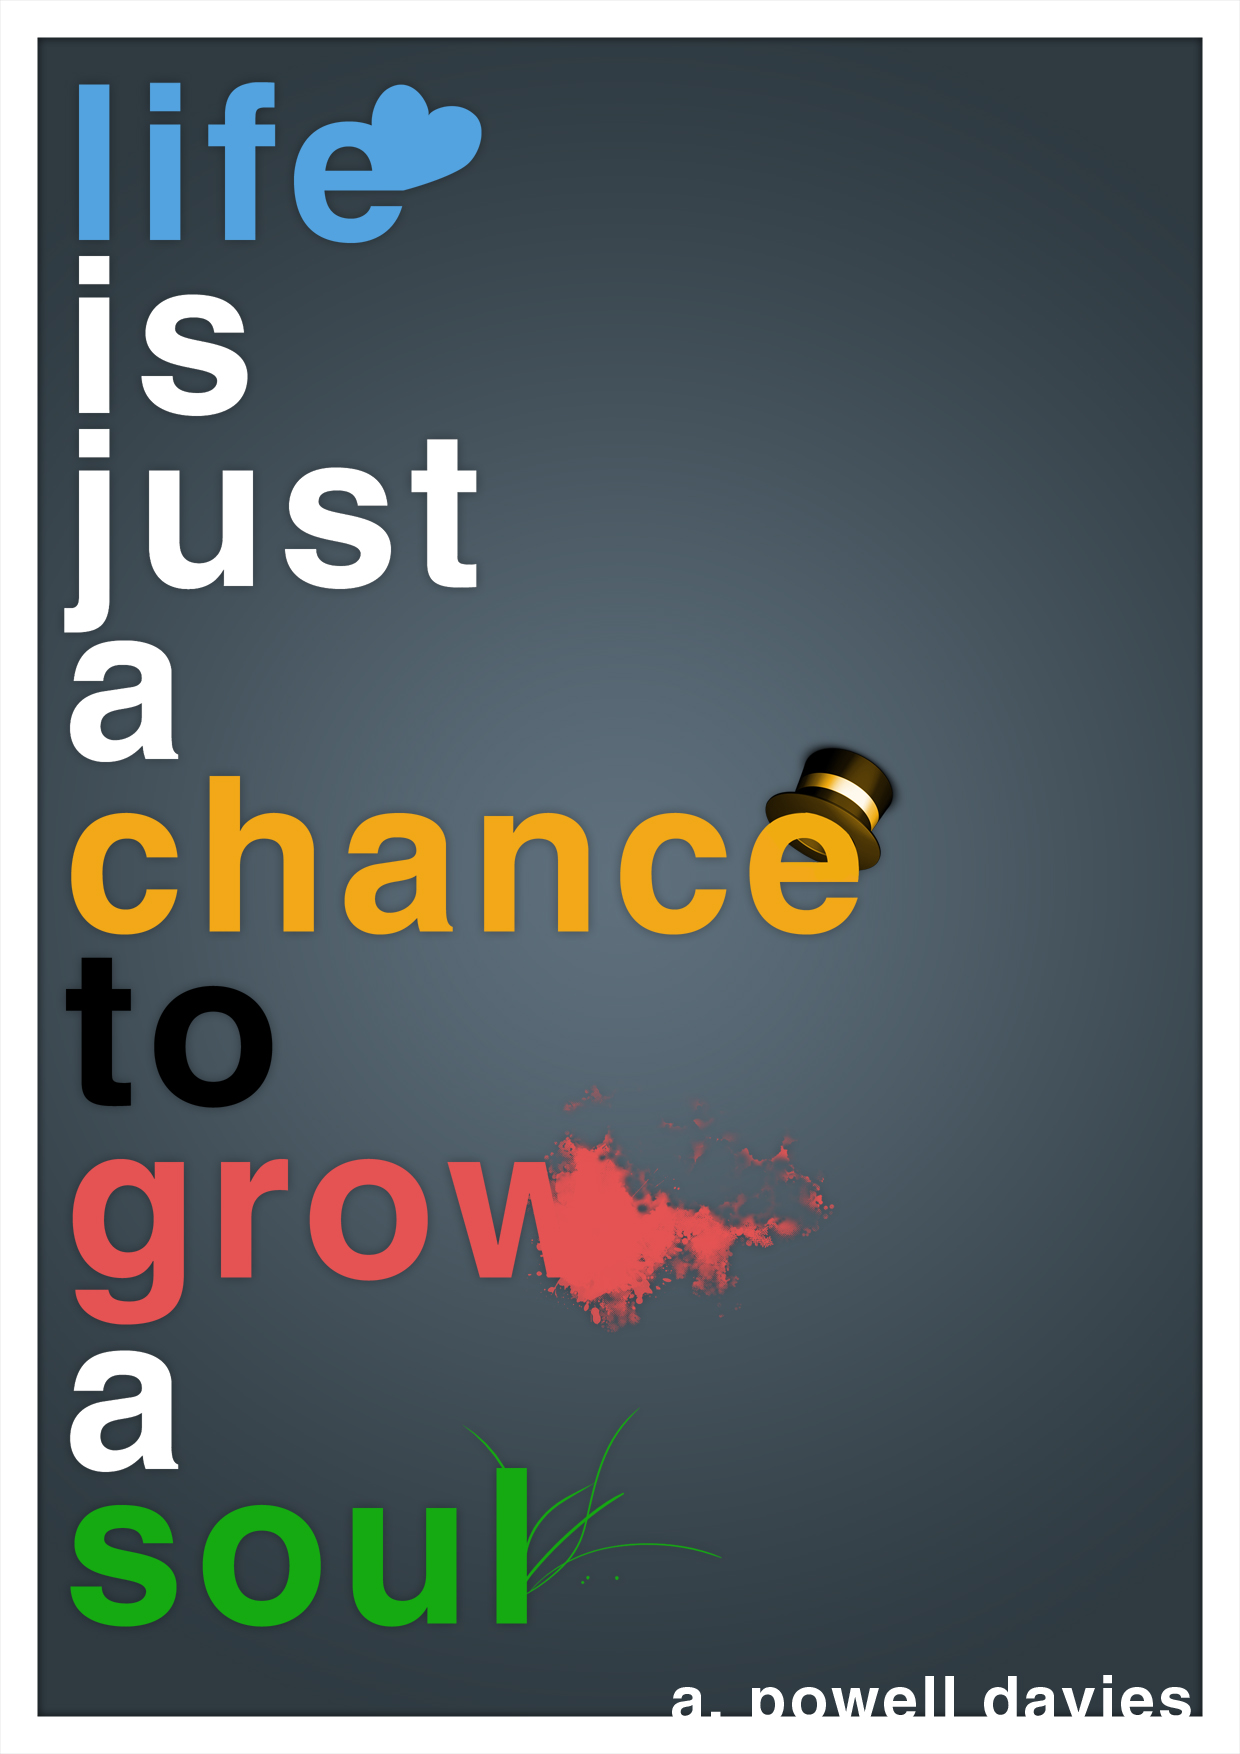 'Life is just a chance...'